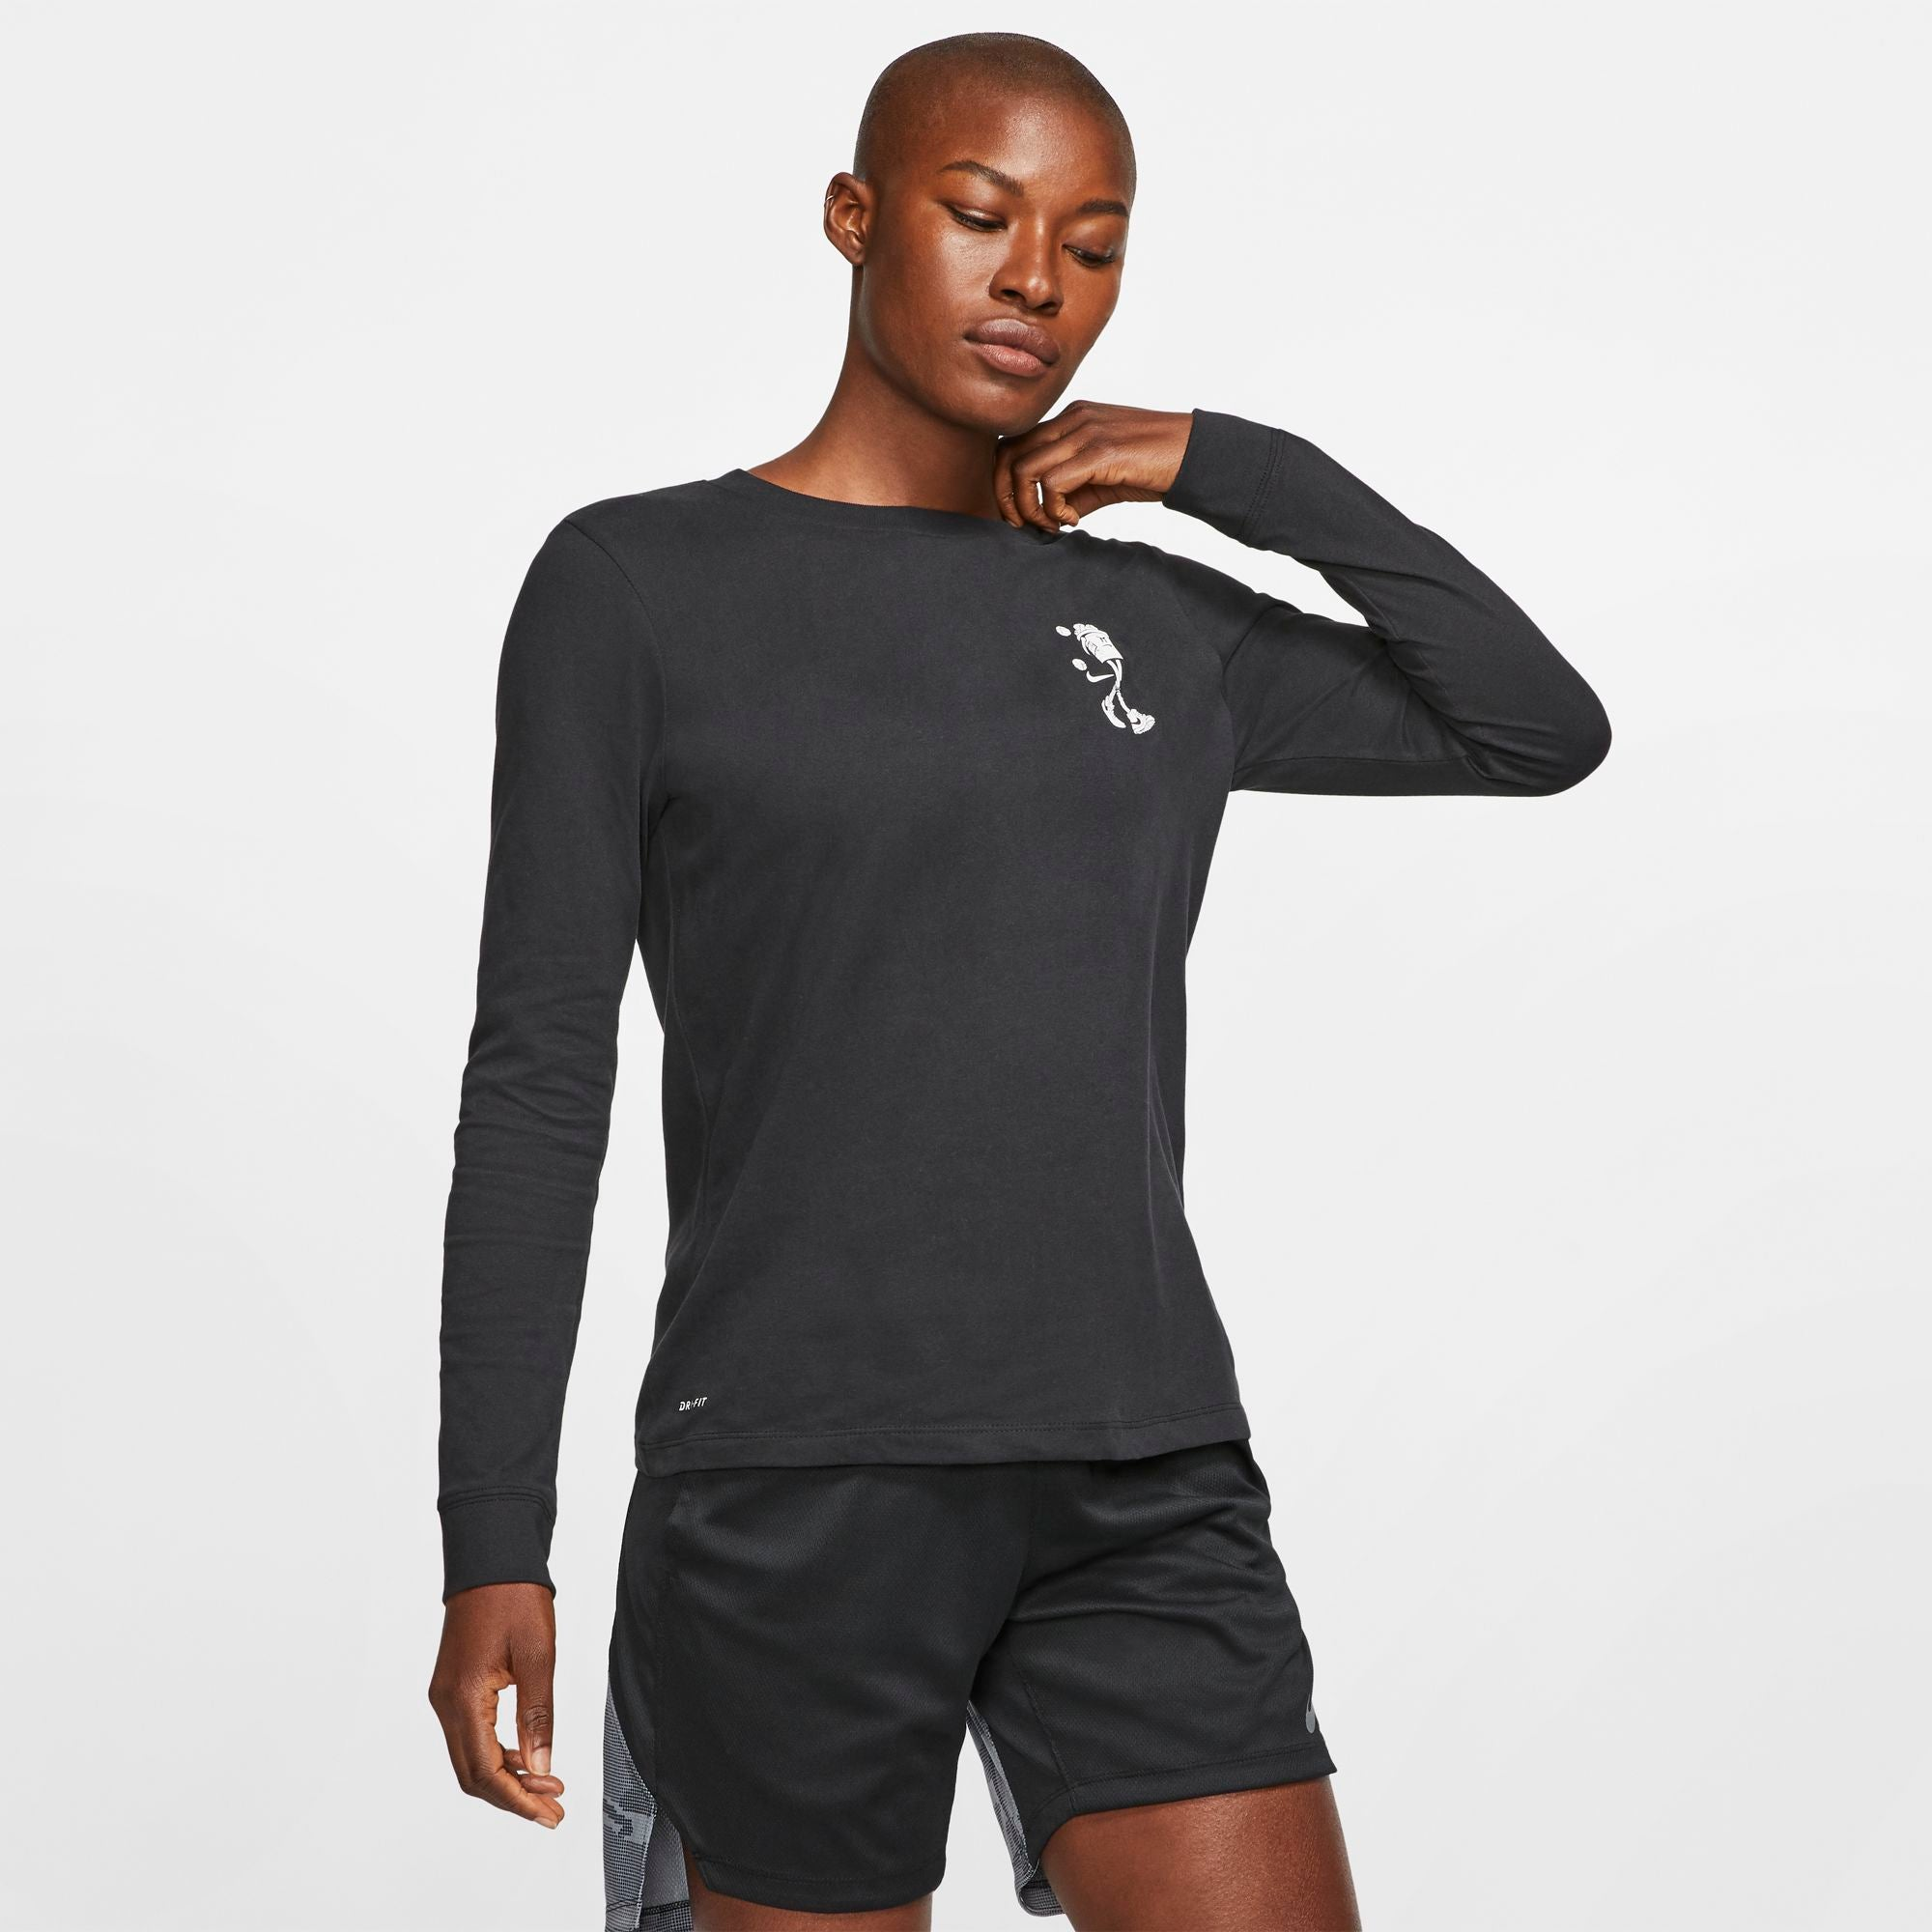 Nike Womens Basketball Dri-fit Long-Sleeved Tee - Black